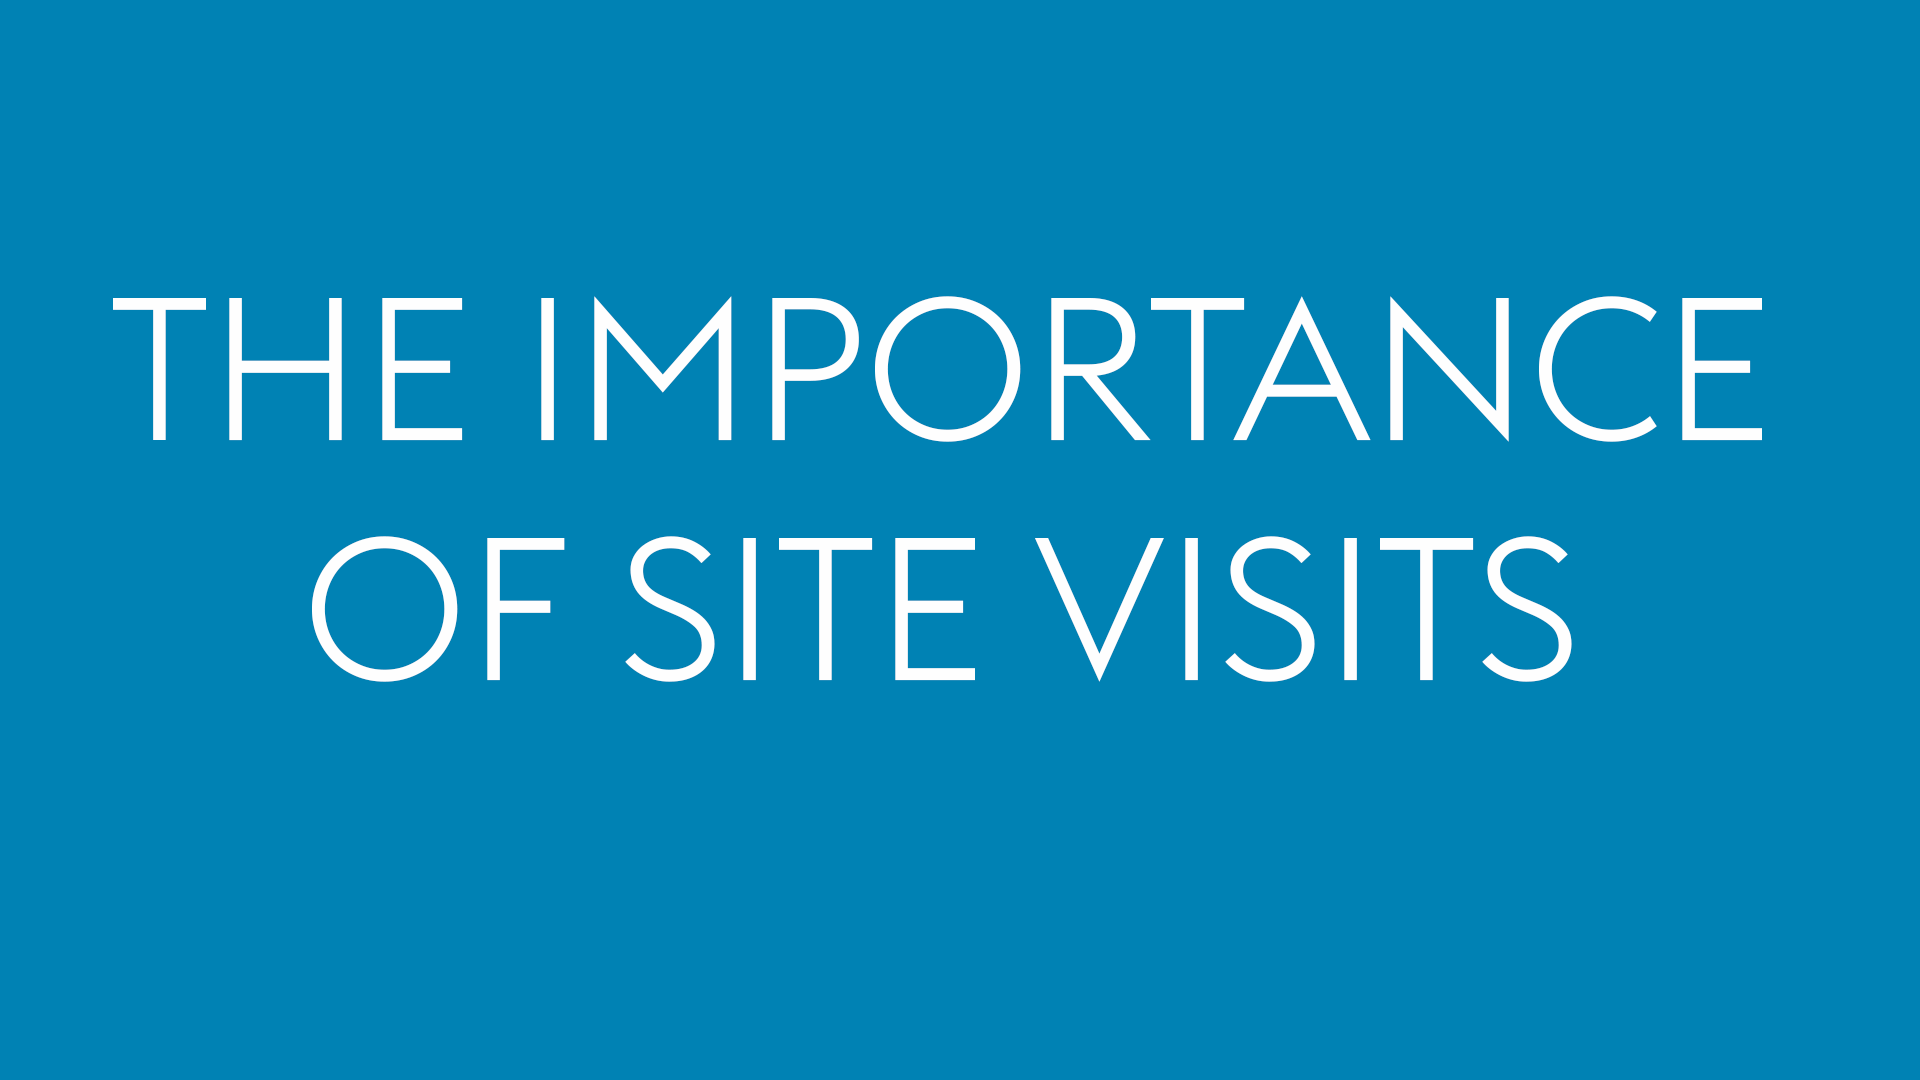 The importance of site visits